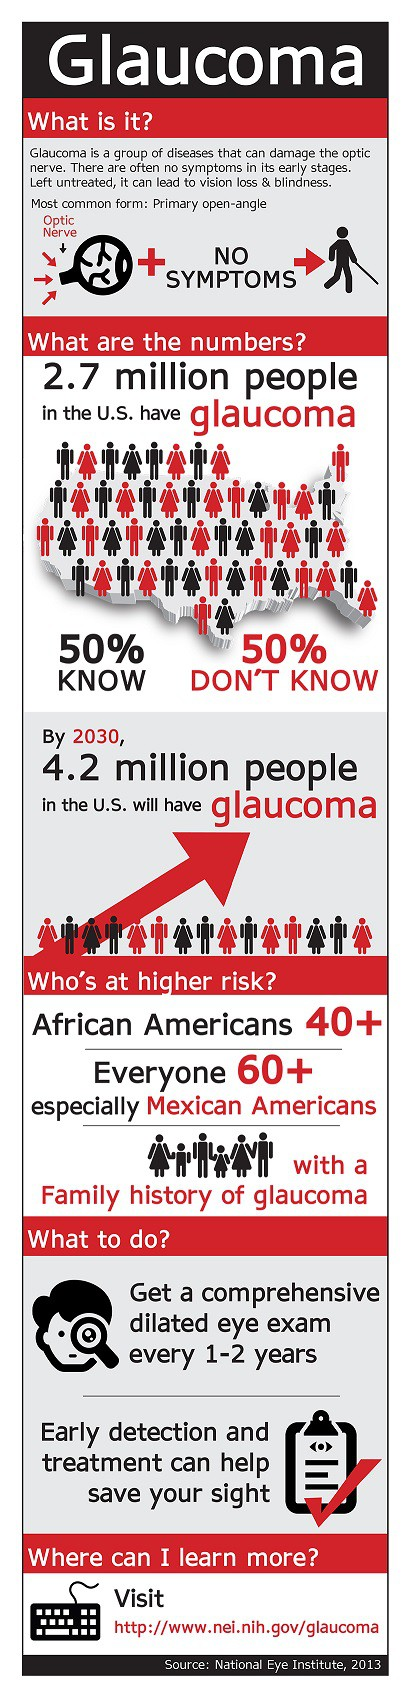 Kaye Swain Roseville CA real estate agent and boomer senior blogger shares GlaucomaAwarenessMonth infographic